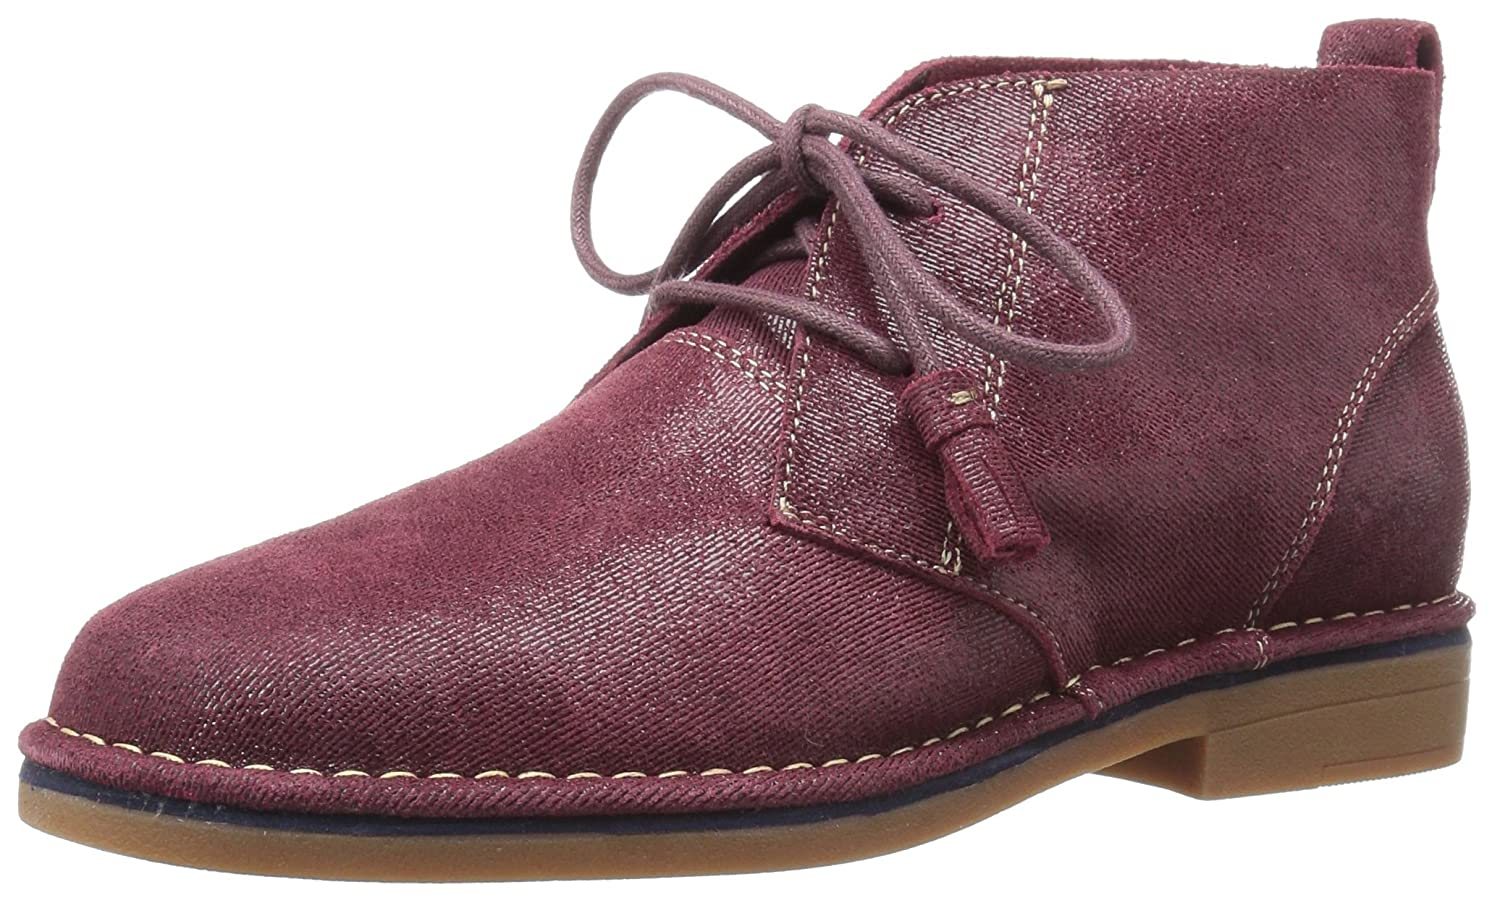 Hush Puppies Cyra Catelyn - Botas Mujer8 B(M) US|Wine Shimmer Suede